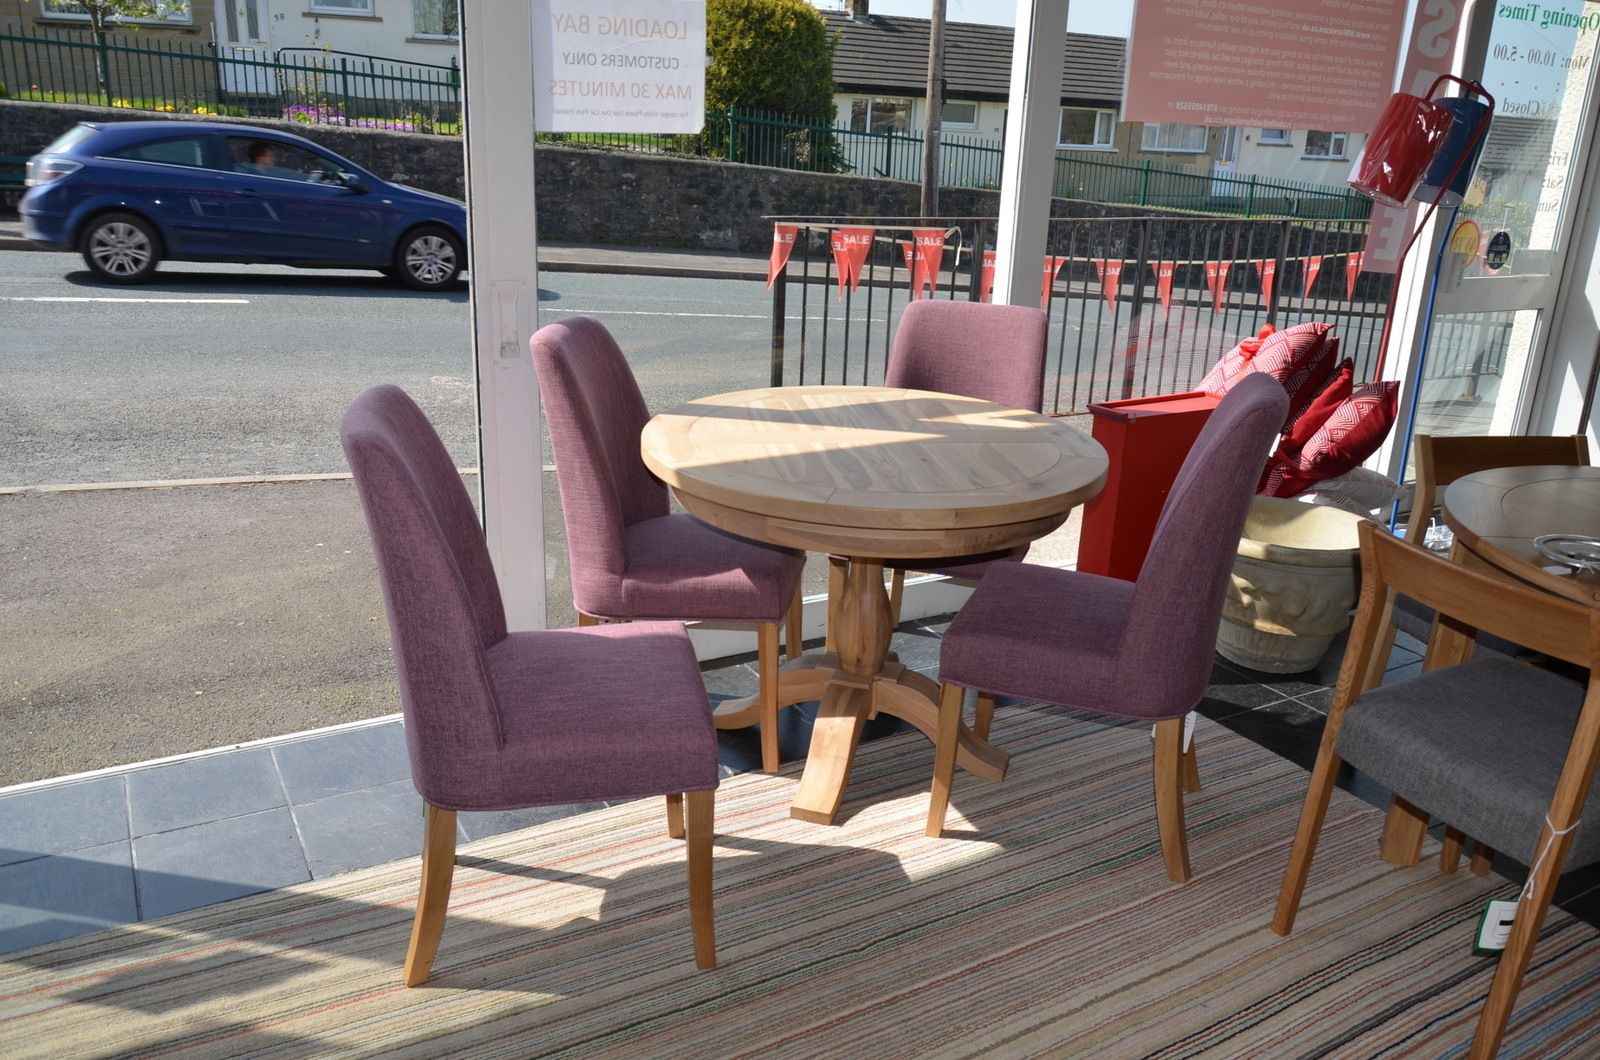 Hover Round Chairs Tuscany Round Dining Table And 4 Purple Pinner Chairs